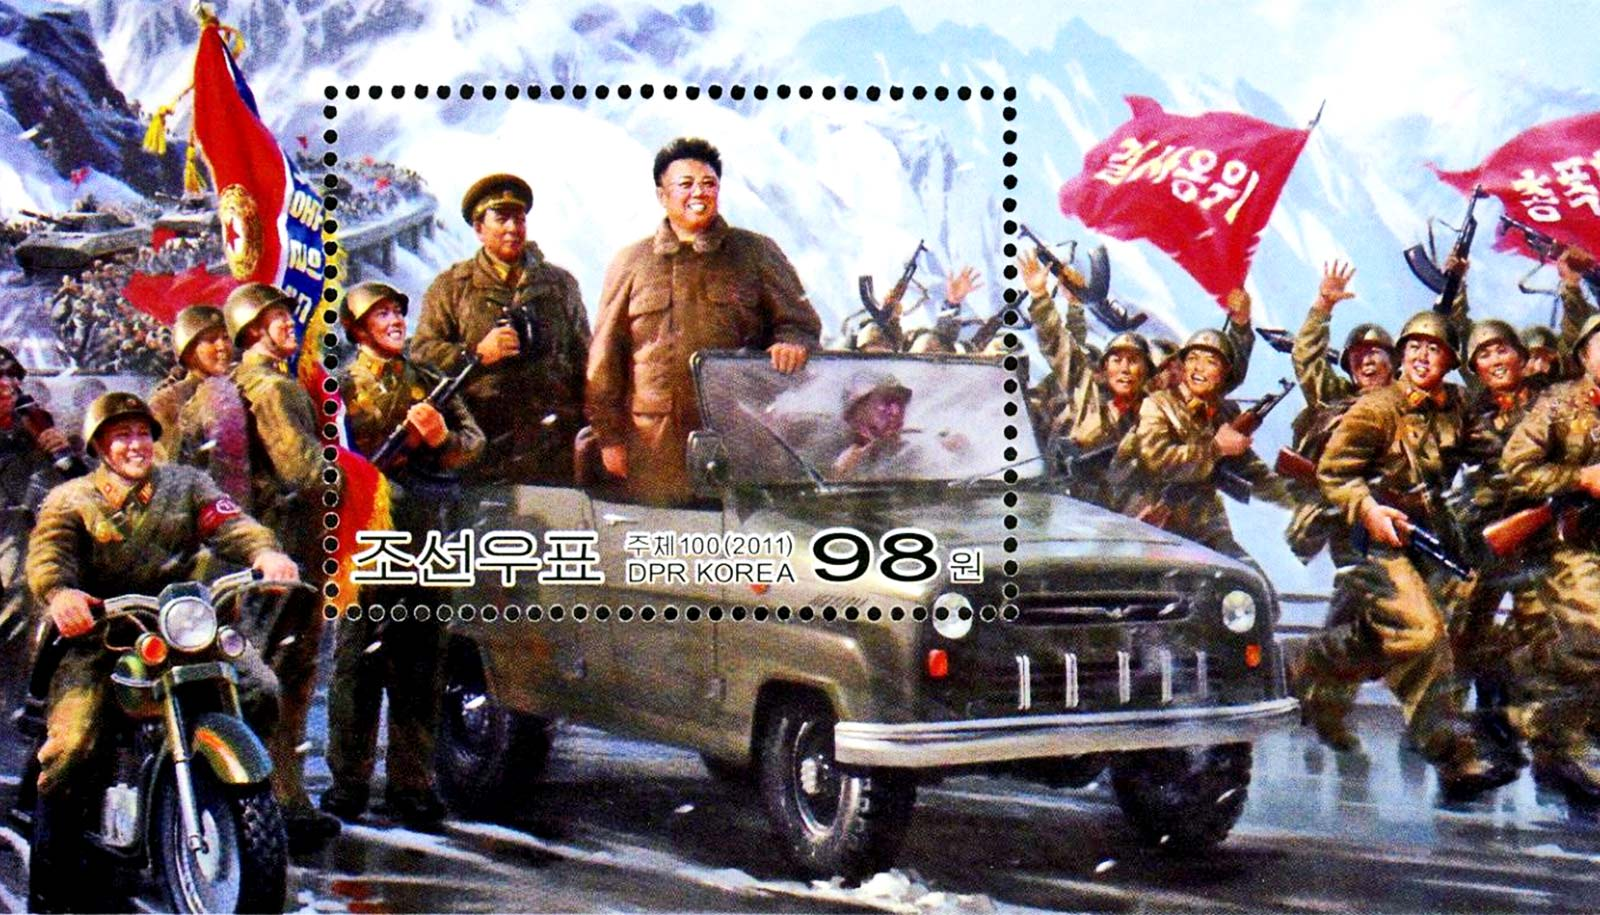 Stamp collection gives rare glimpse inside North Korea